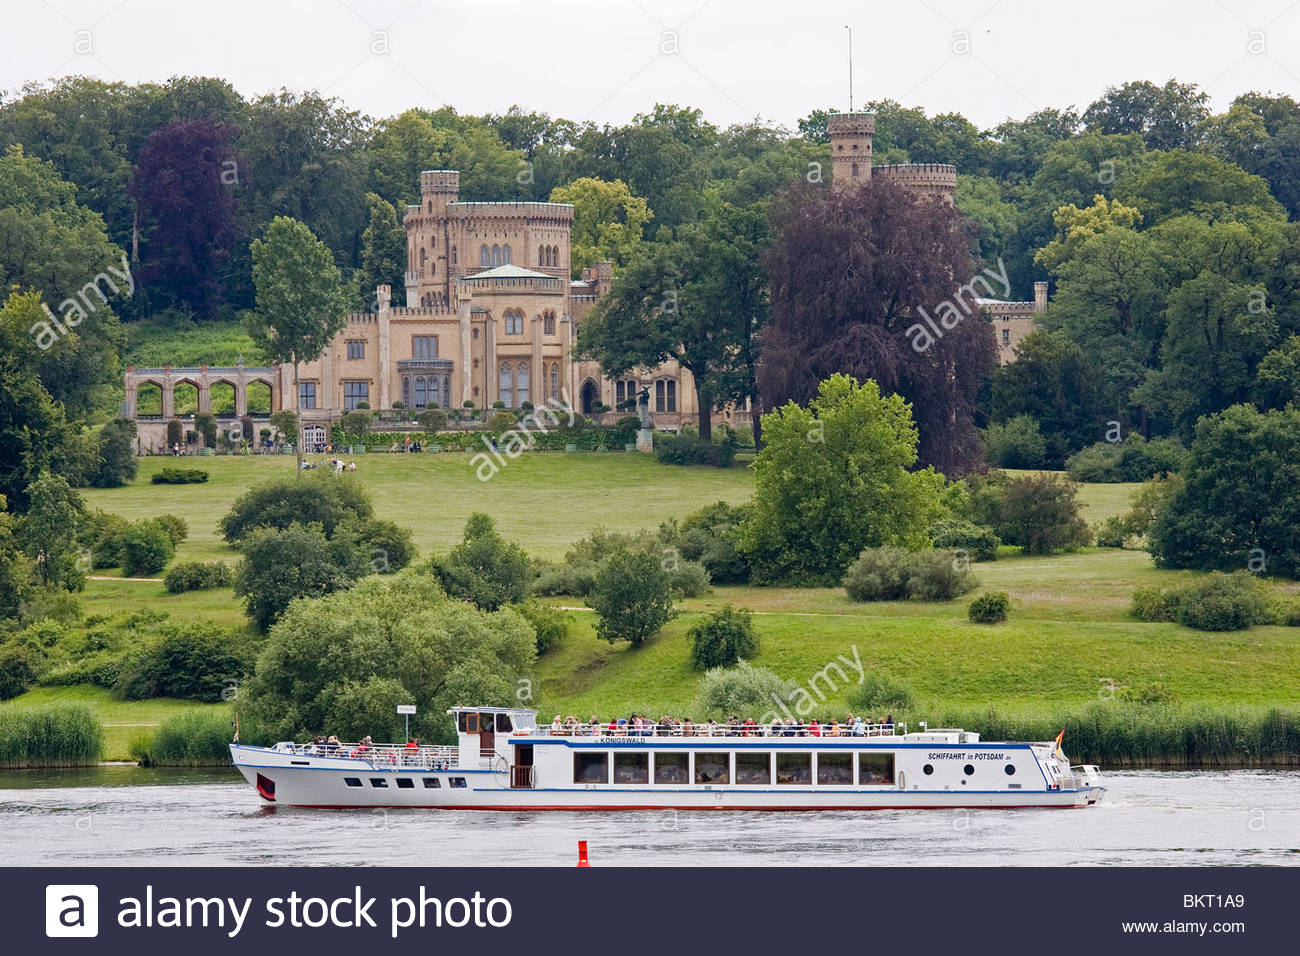 Babelsberg Castle,Lake Tiefer,Potsdam,Brandenburg,Germany - Stock Image